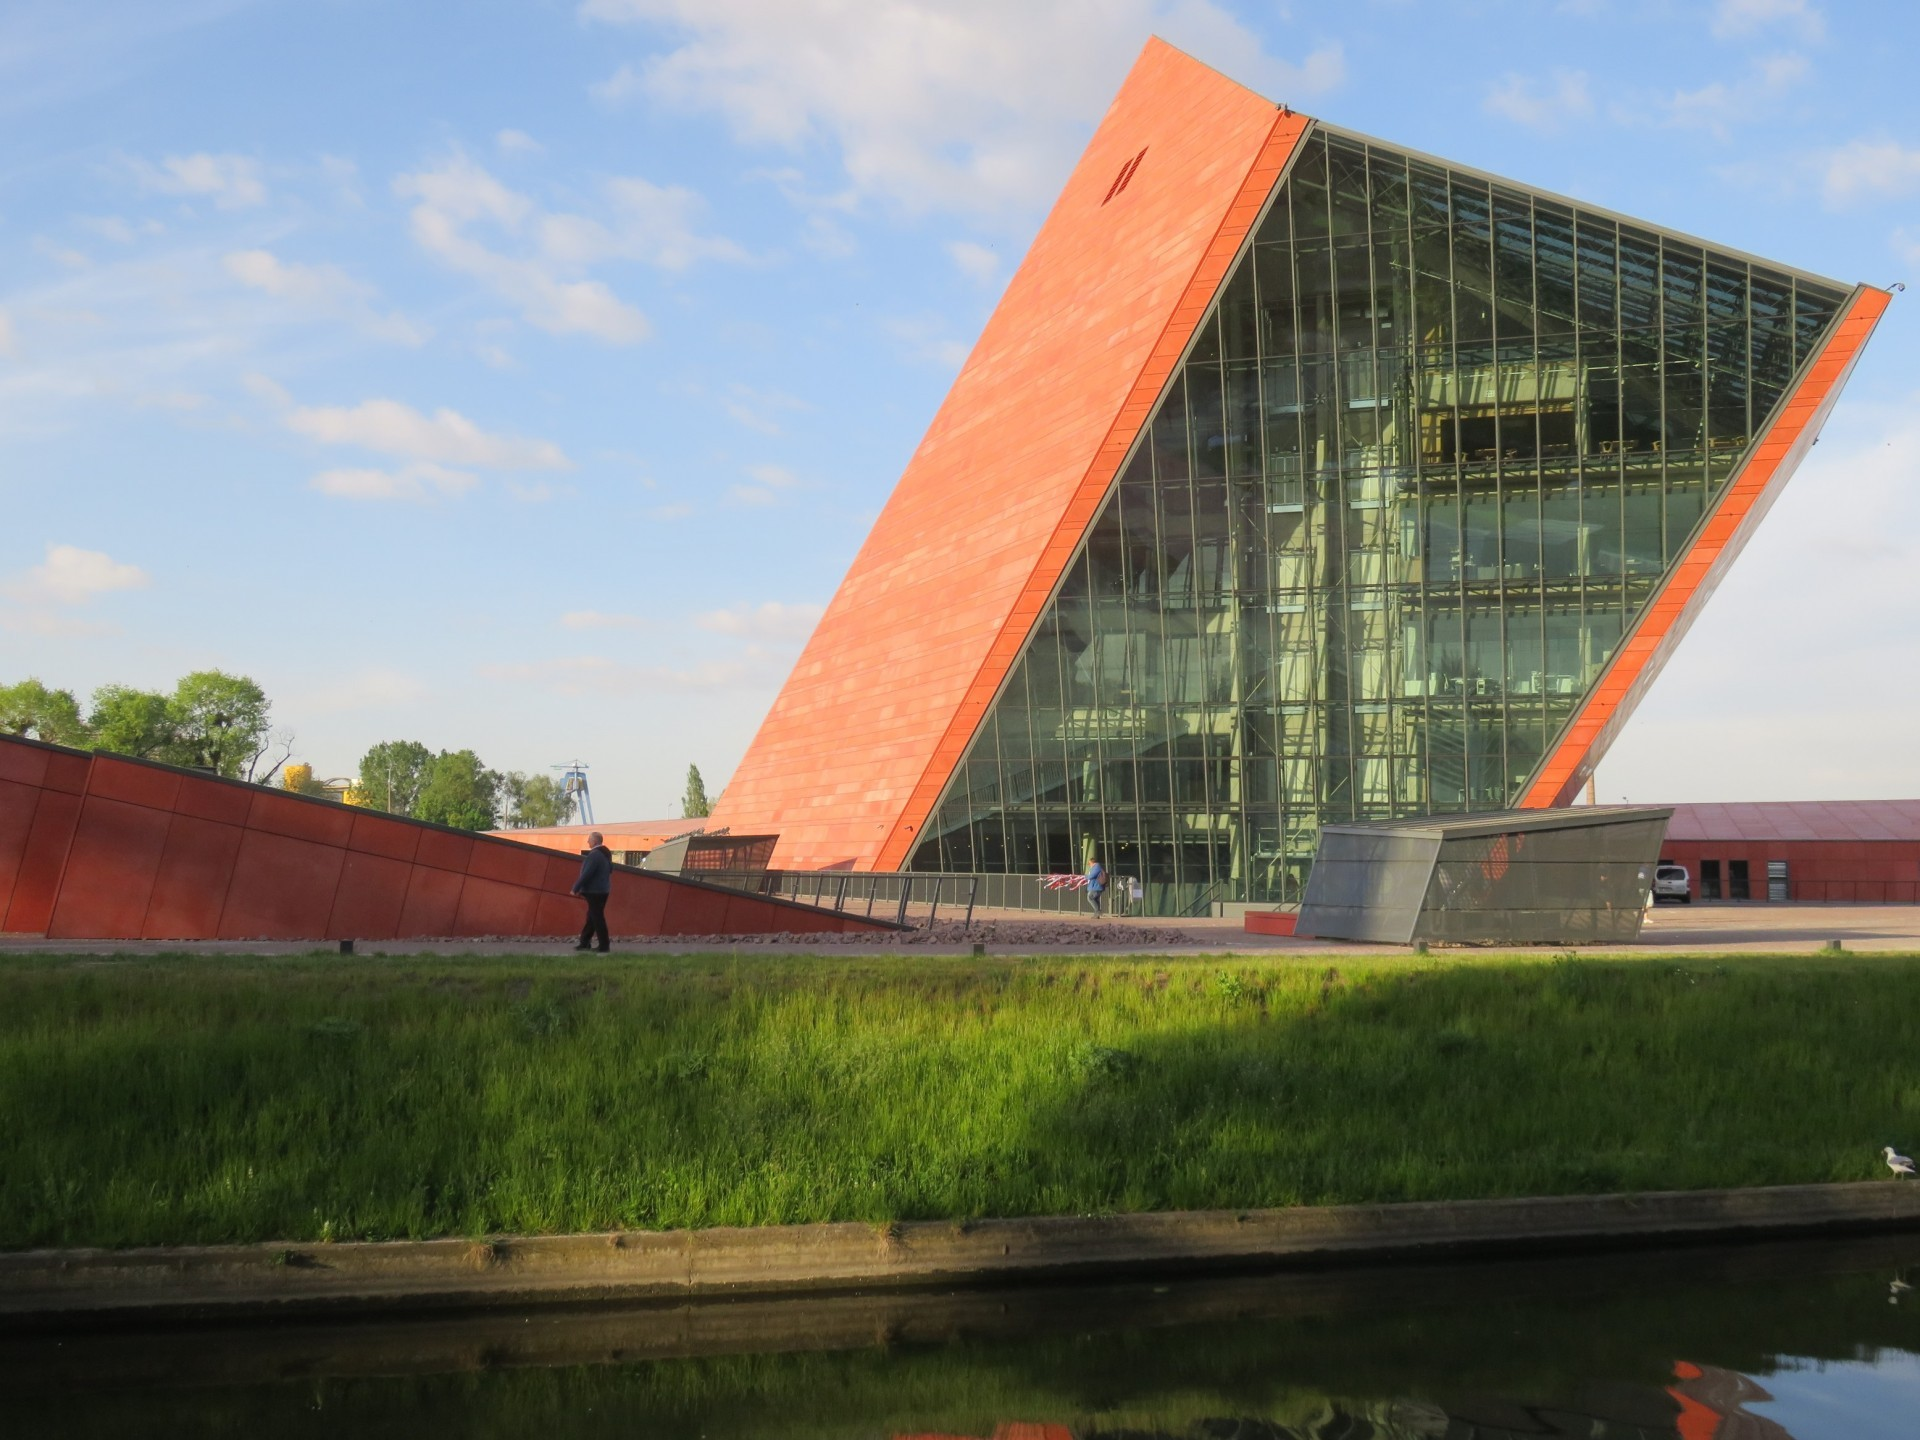 Top Tri-city Attractions (Gdansk, Sopot, Gdynia)